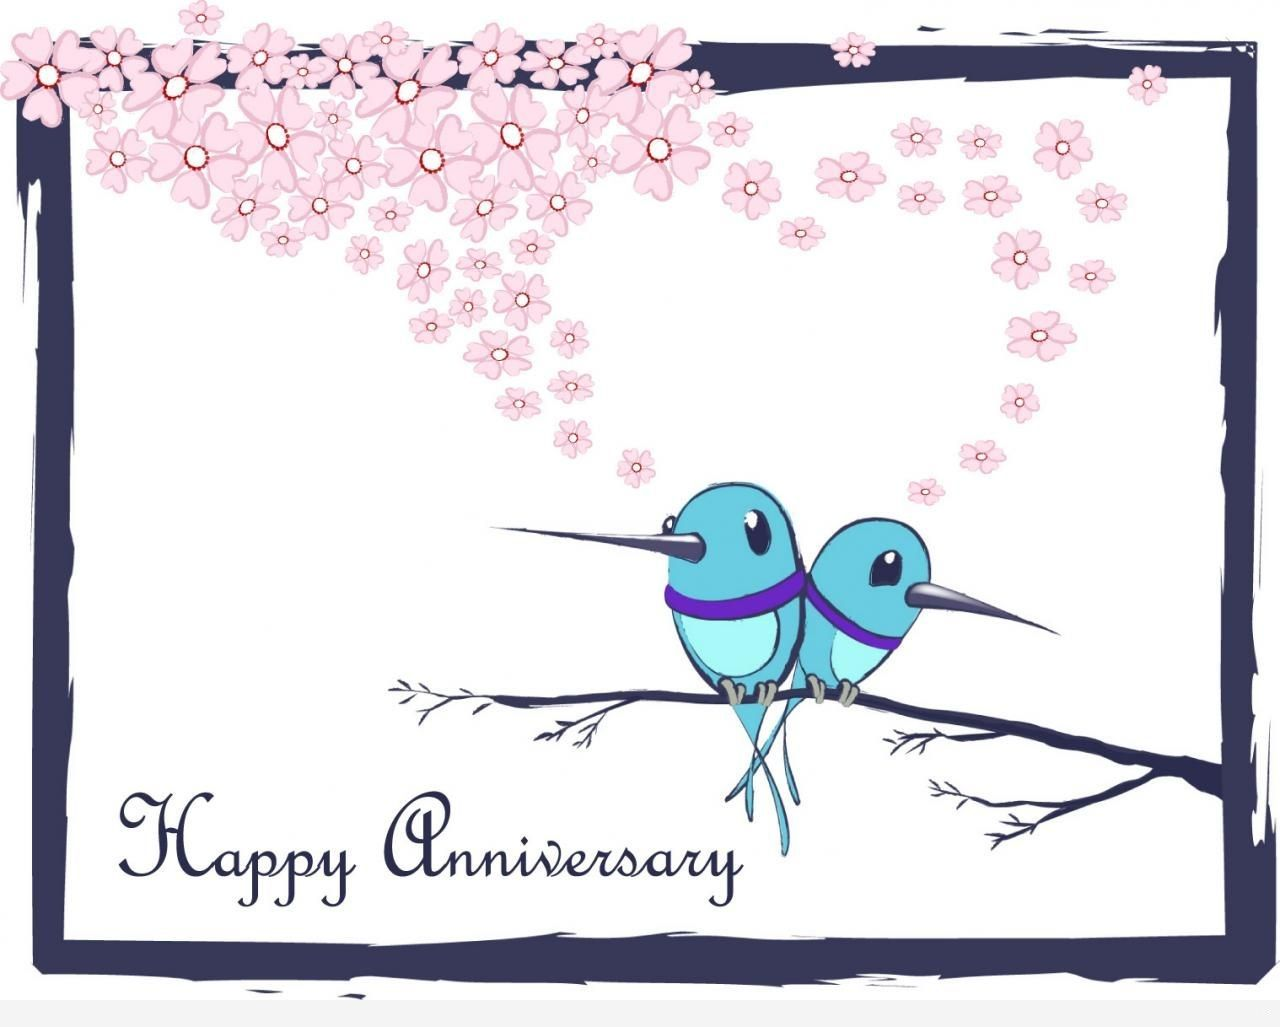 Happy Anniversary Sayings Its Your Anniversary Pinterest